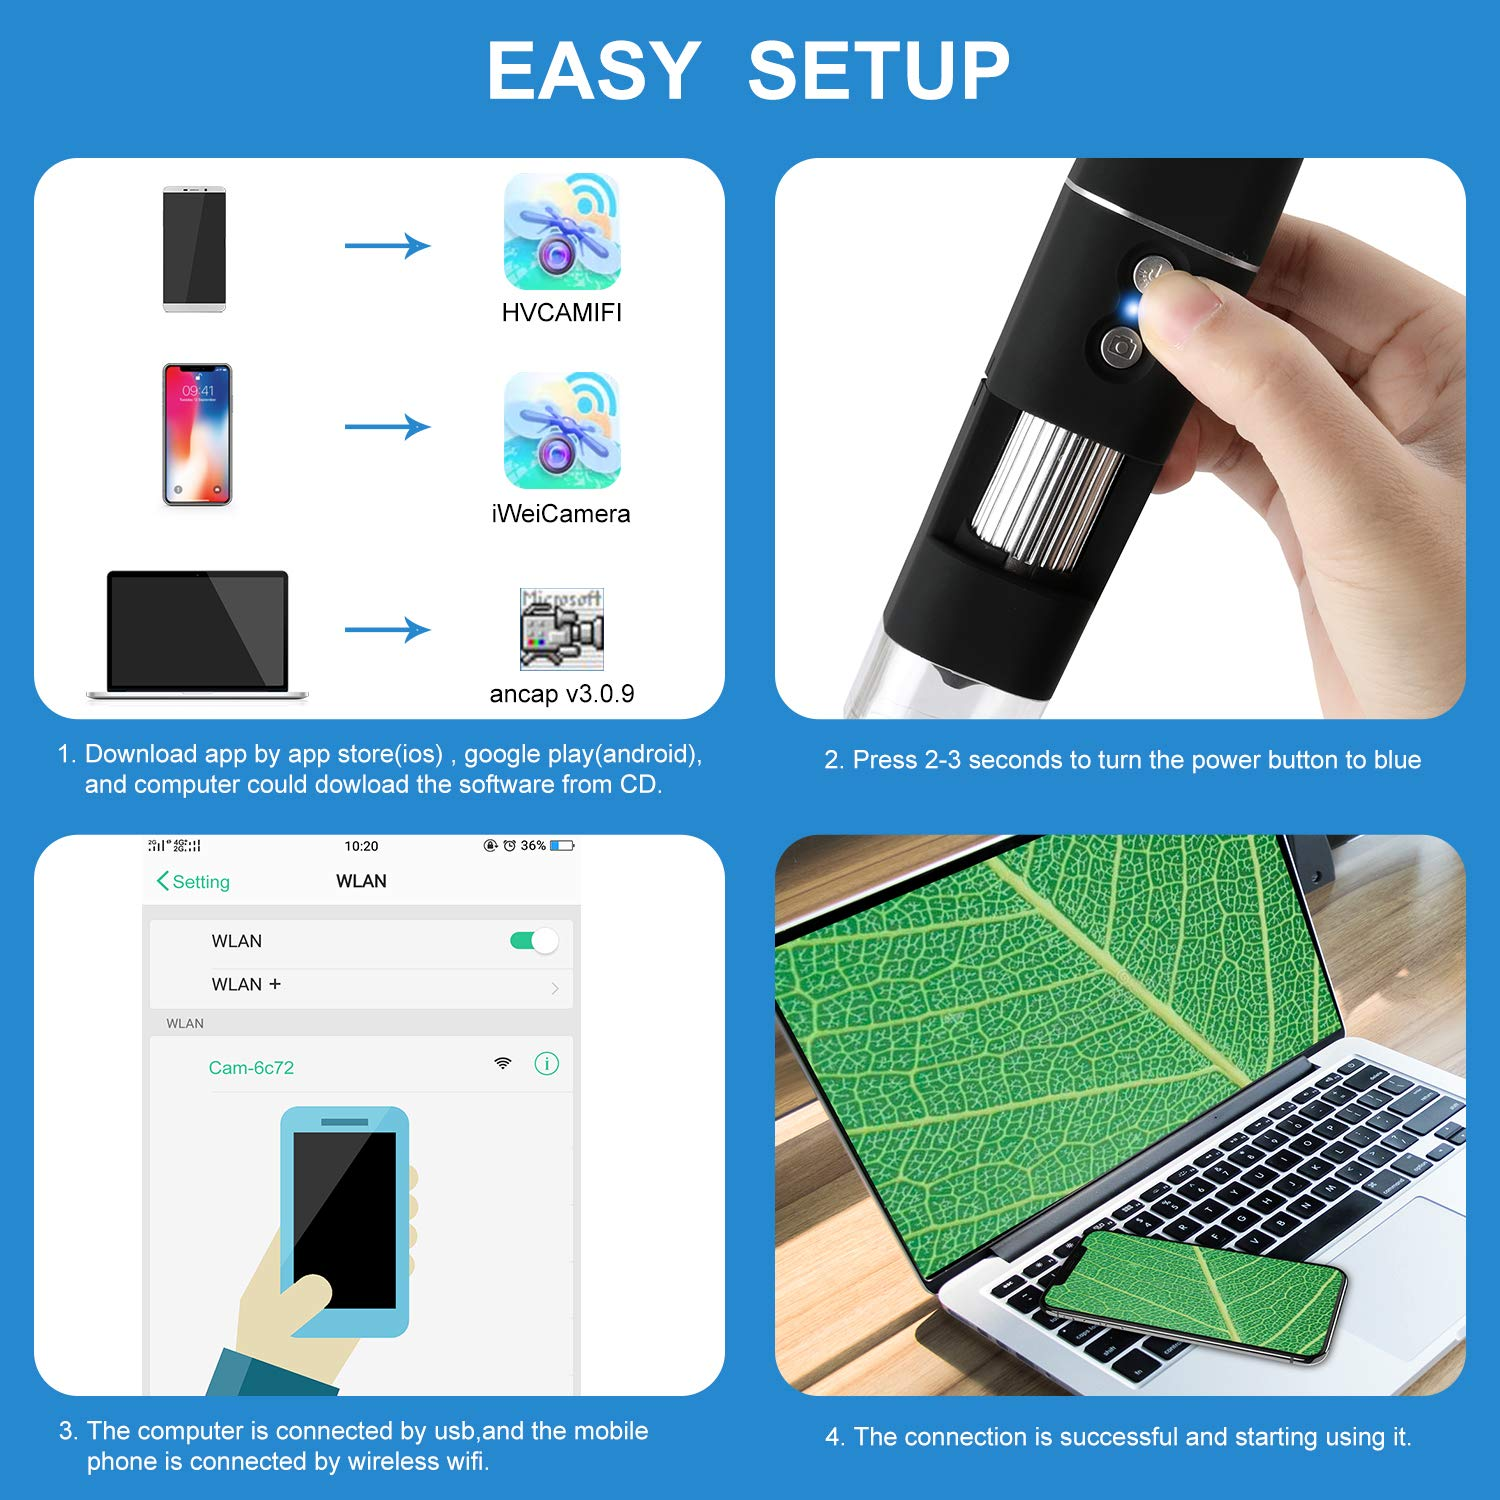 WiFi USB Microscope HINOY Wireless Digital Mini Microscope Camera 2MP 1080p HD 50 to 1000x Magnification Endoscope for iPhone Android Windows /& MAC Devices